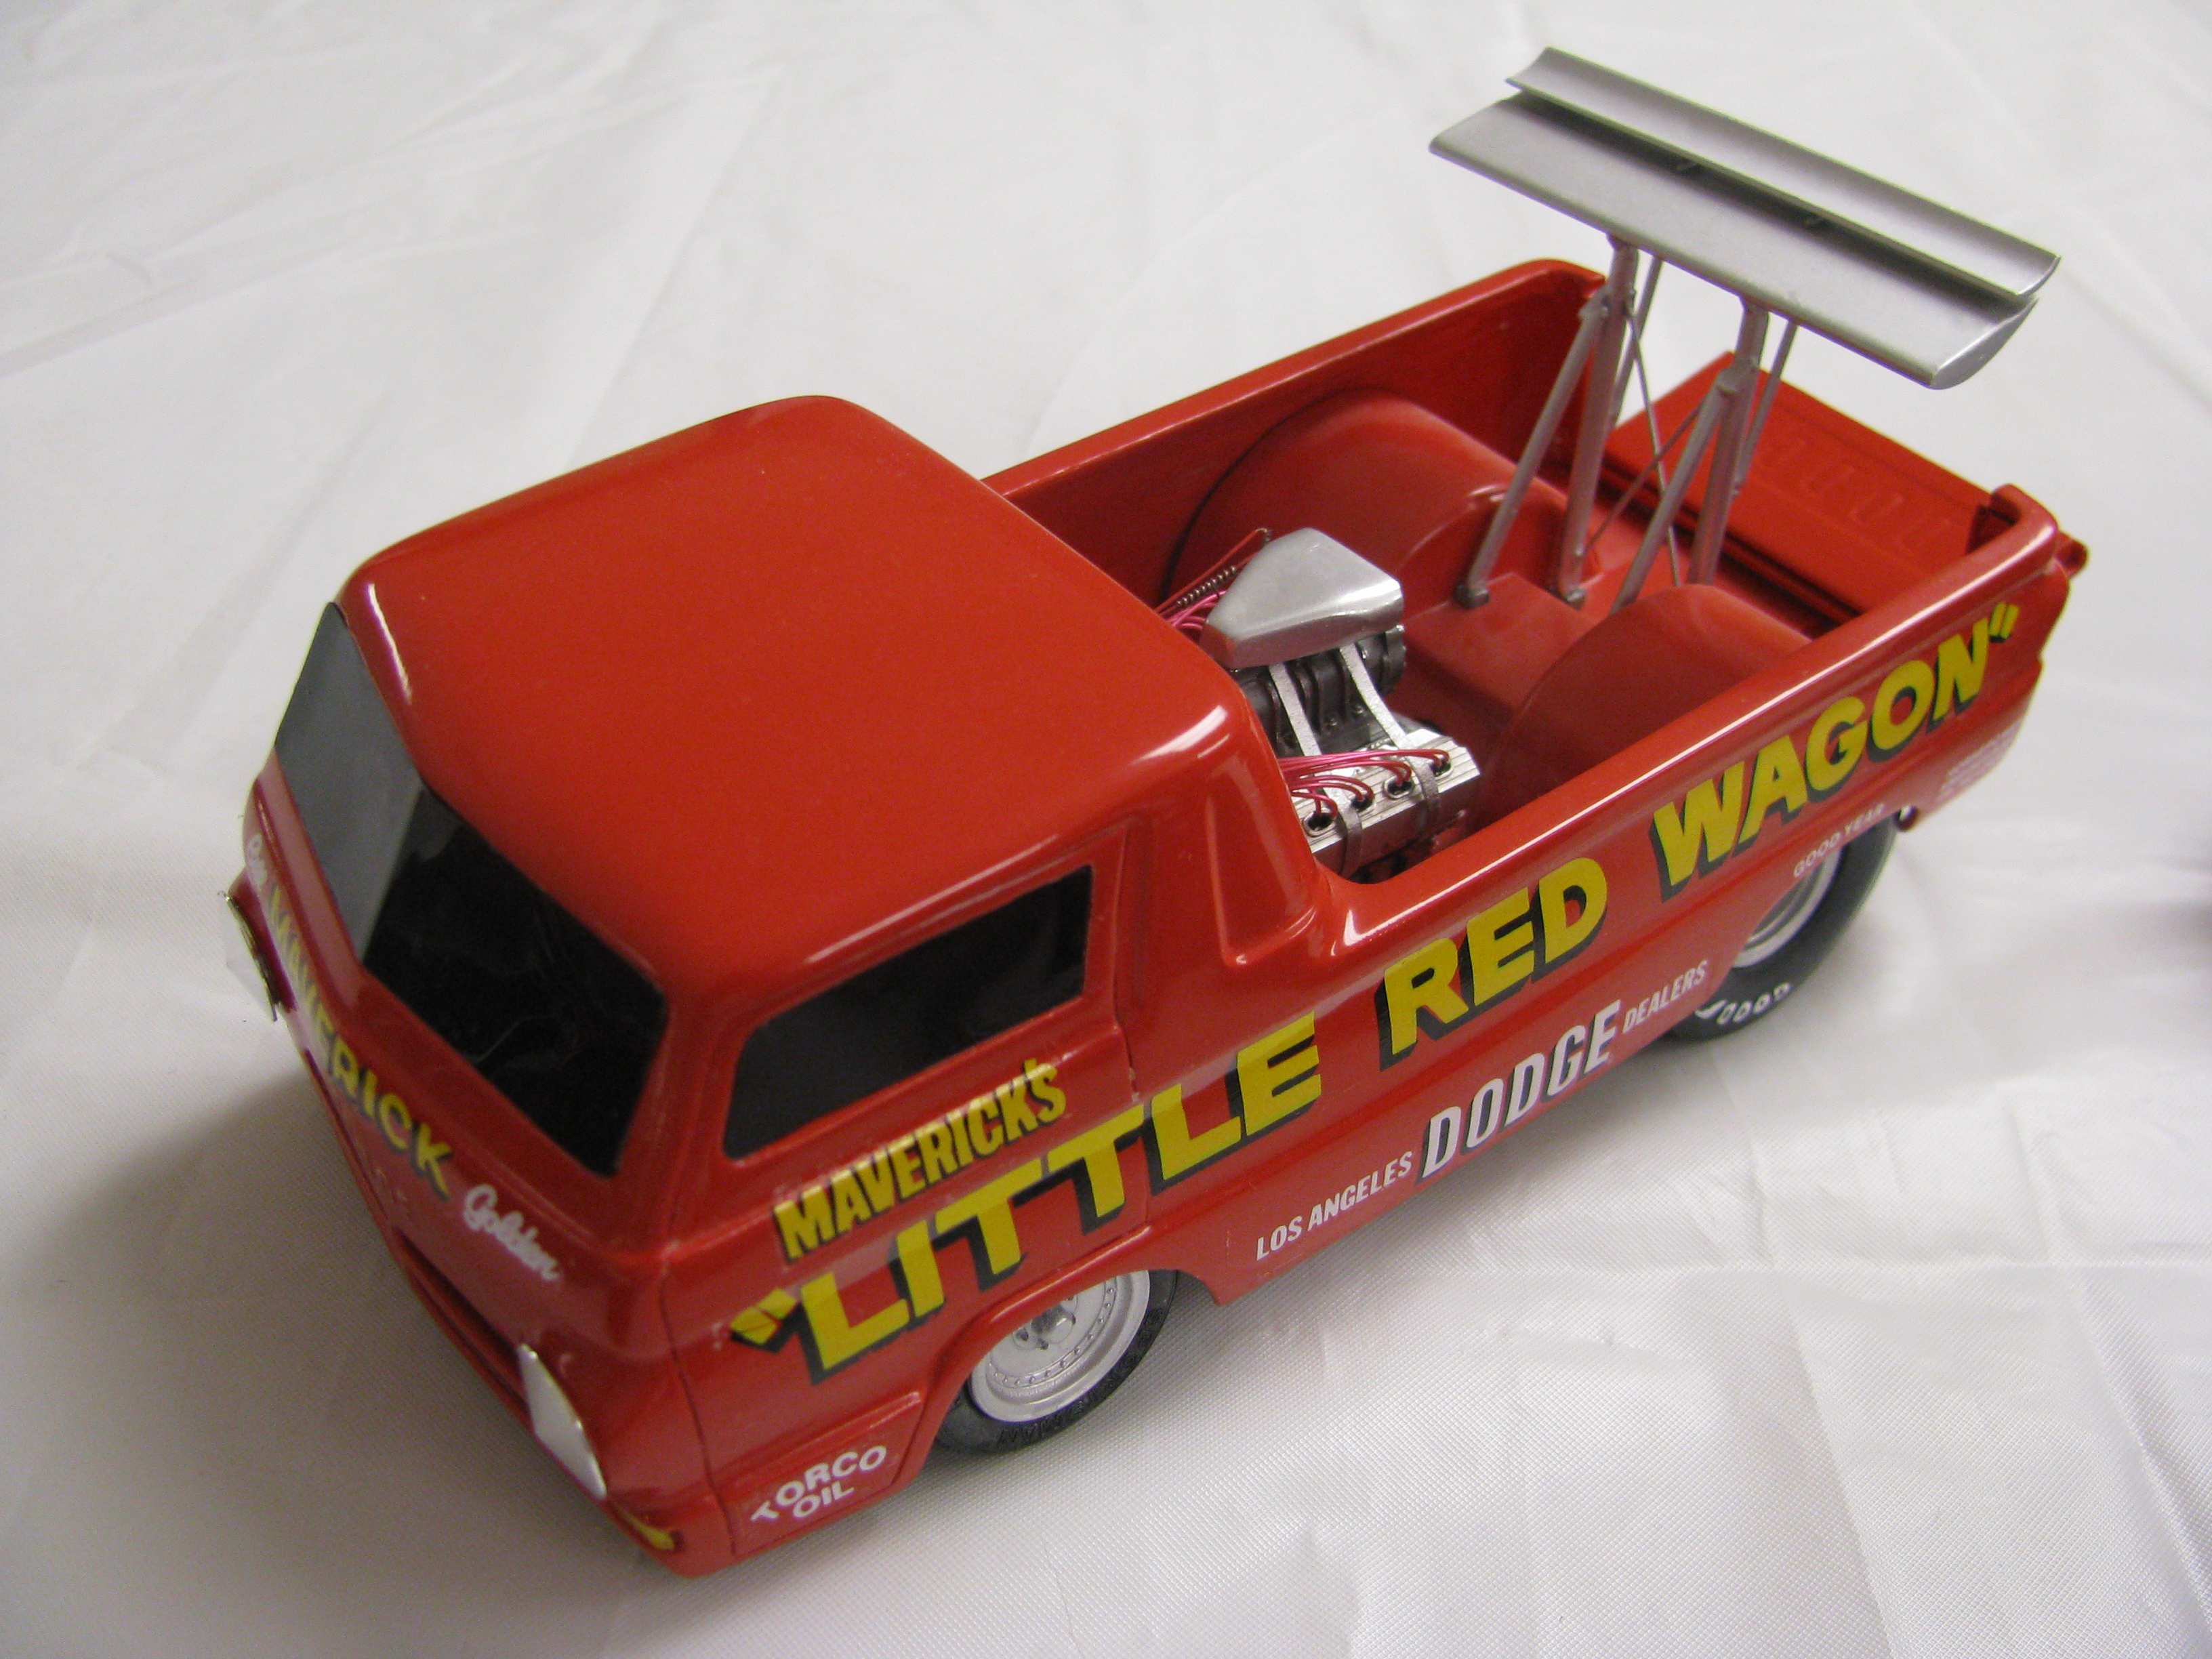 Little Red Wagon The Crittenden Automotive Library